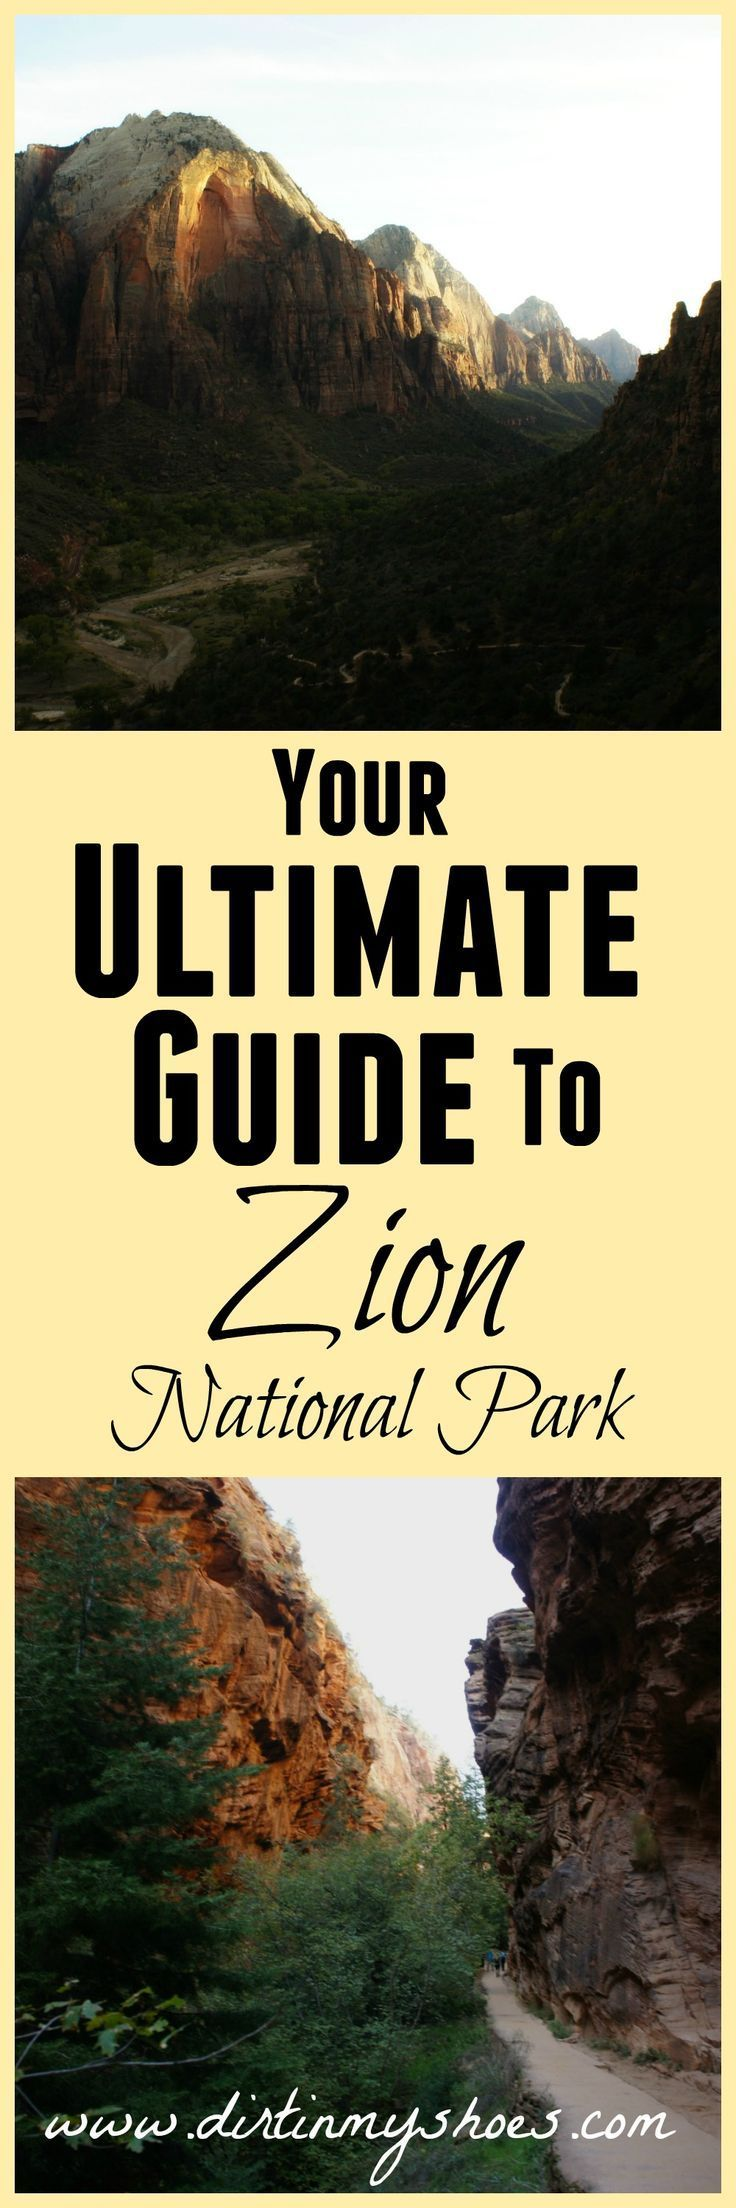 Everything you need to know about taking the trip of a lifetime to Zion National Park -- including lodging, dining, trails, and an awesome itinerary!